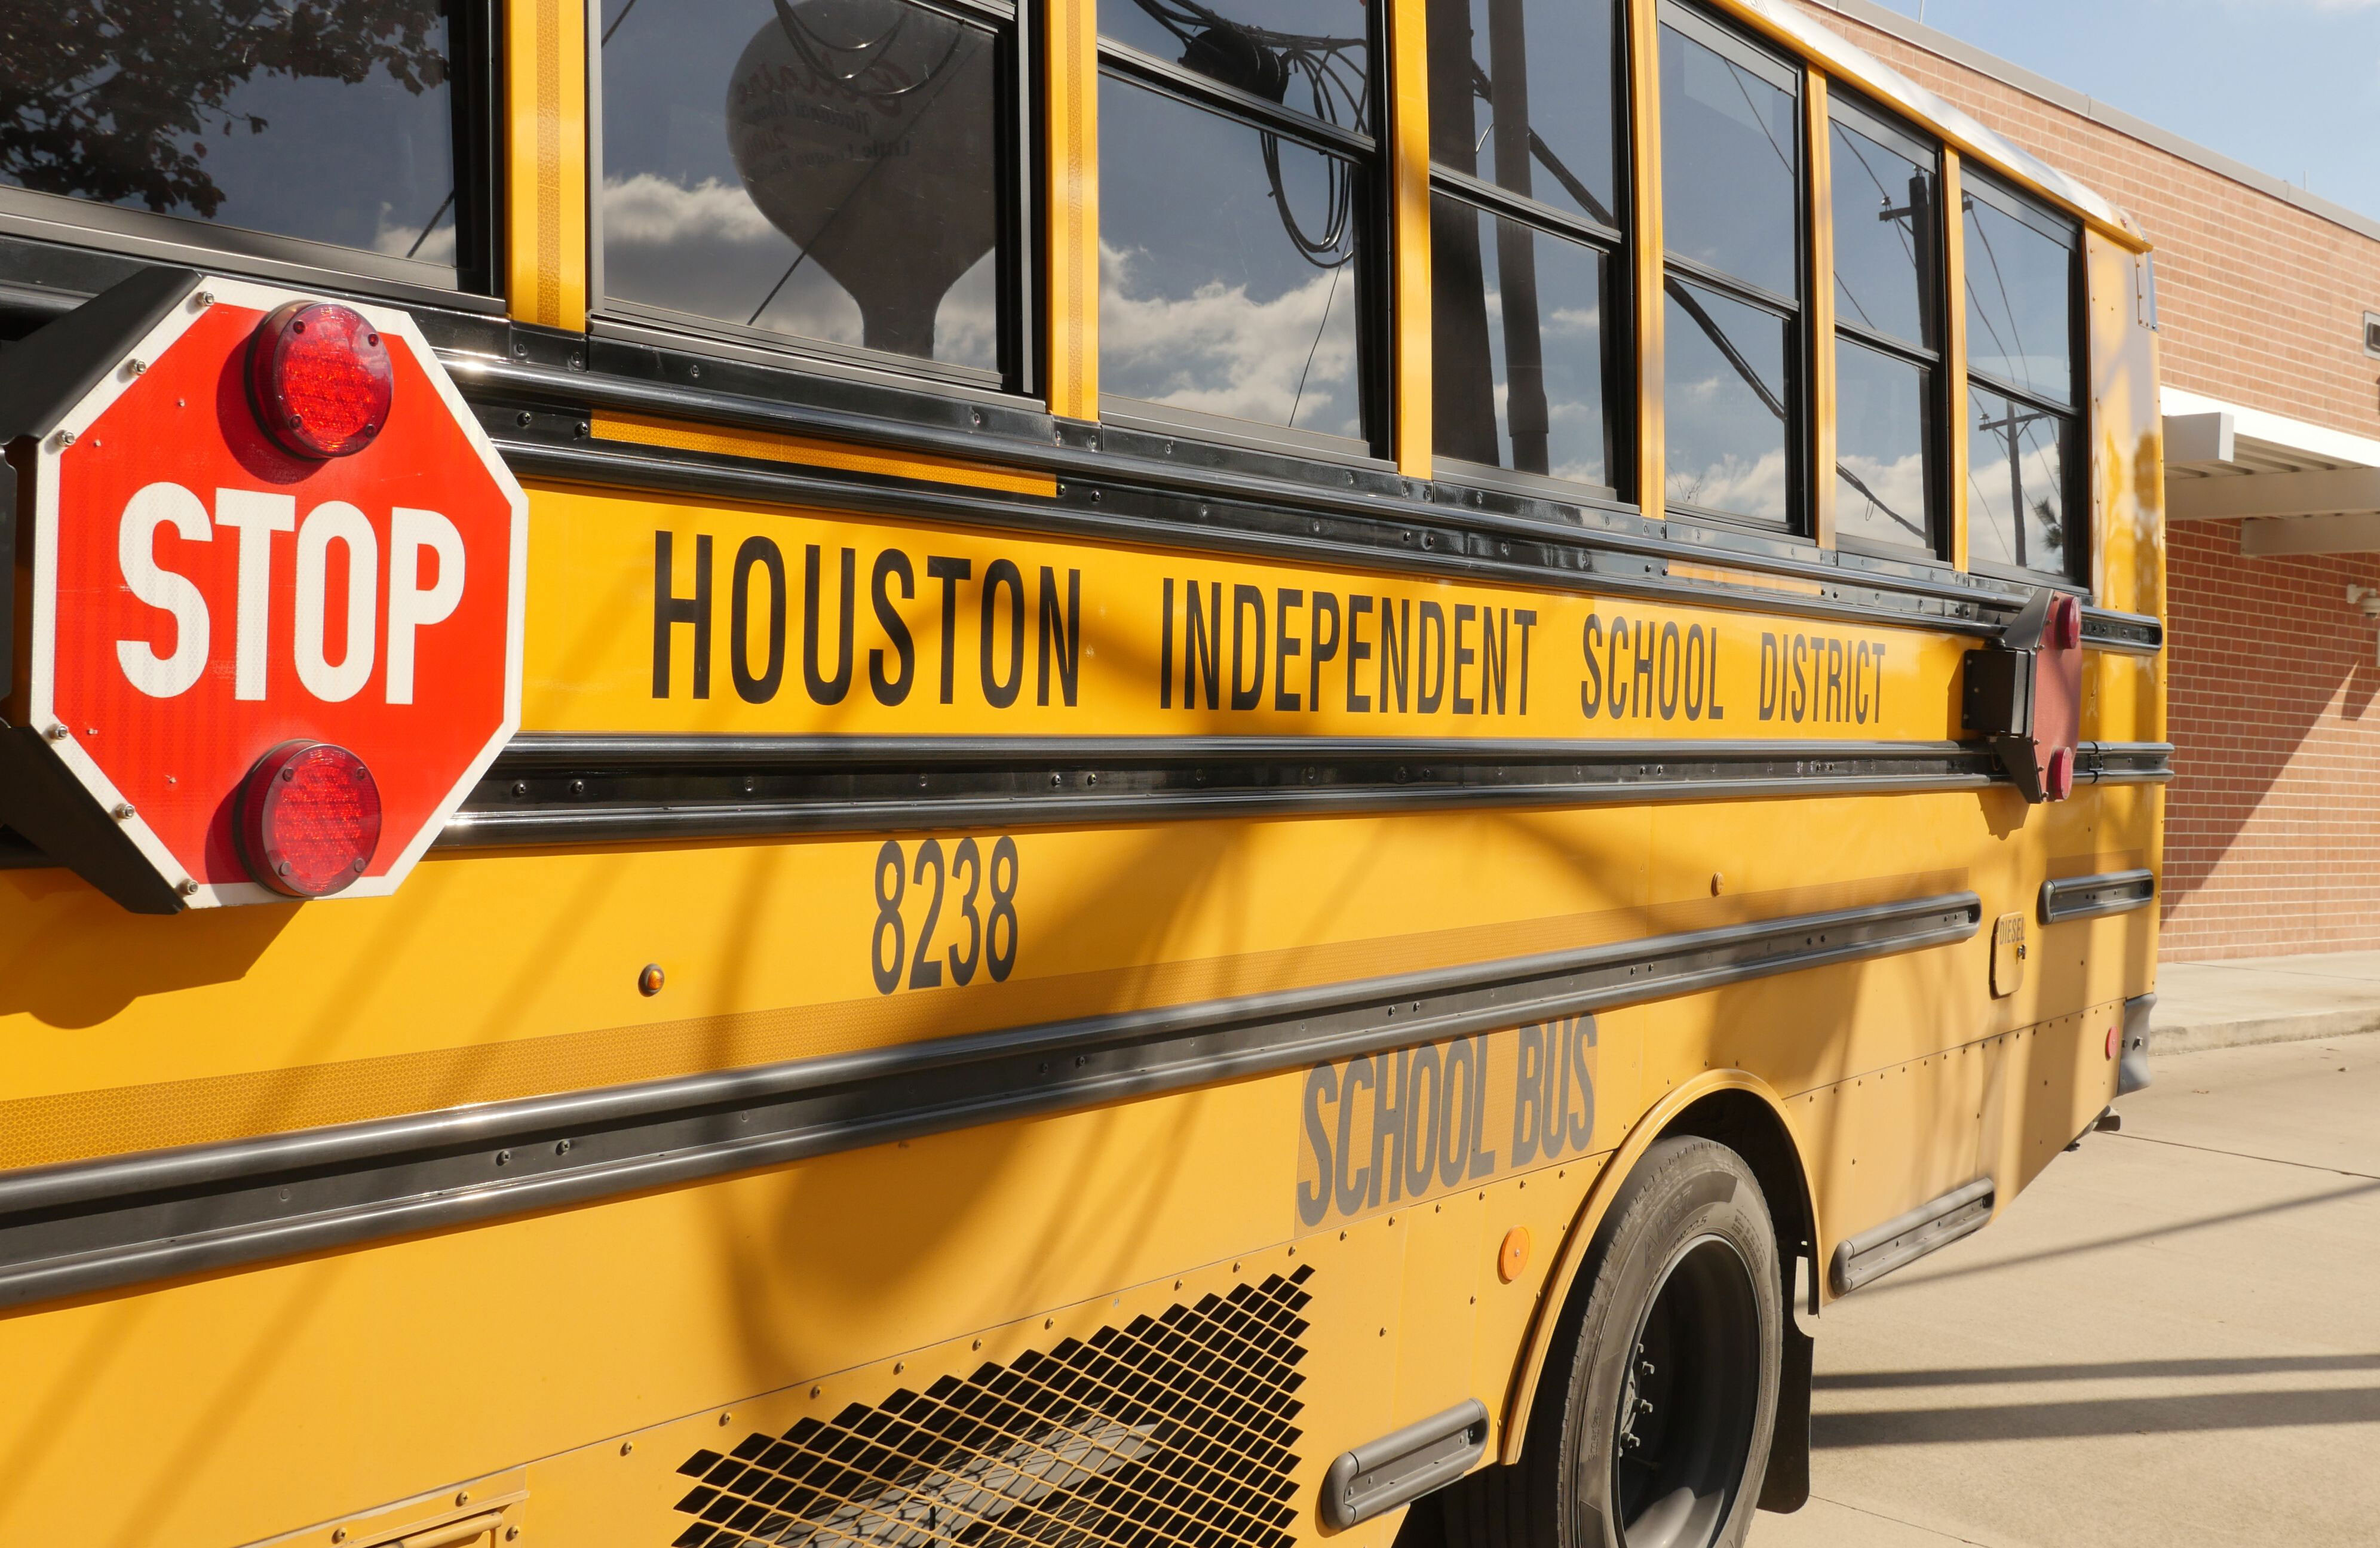 Covid-19 driver shortage hits school districts and ride-hailing services